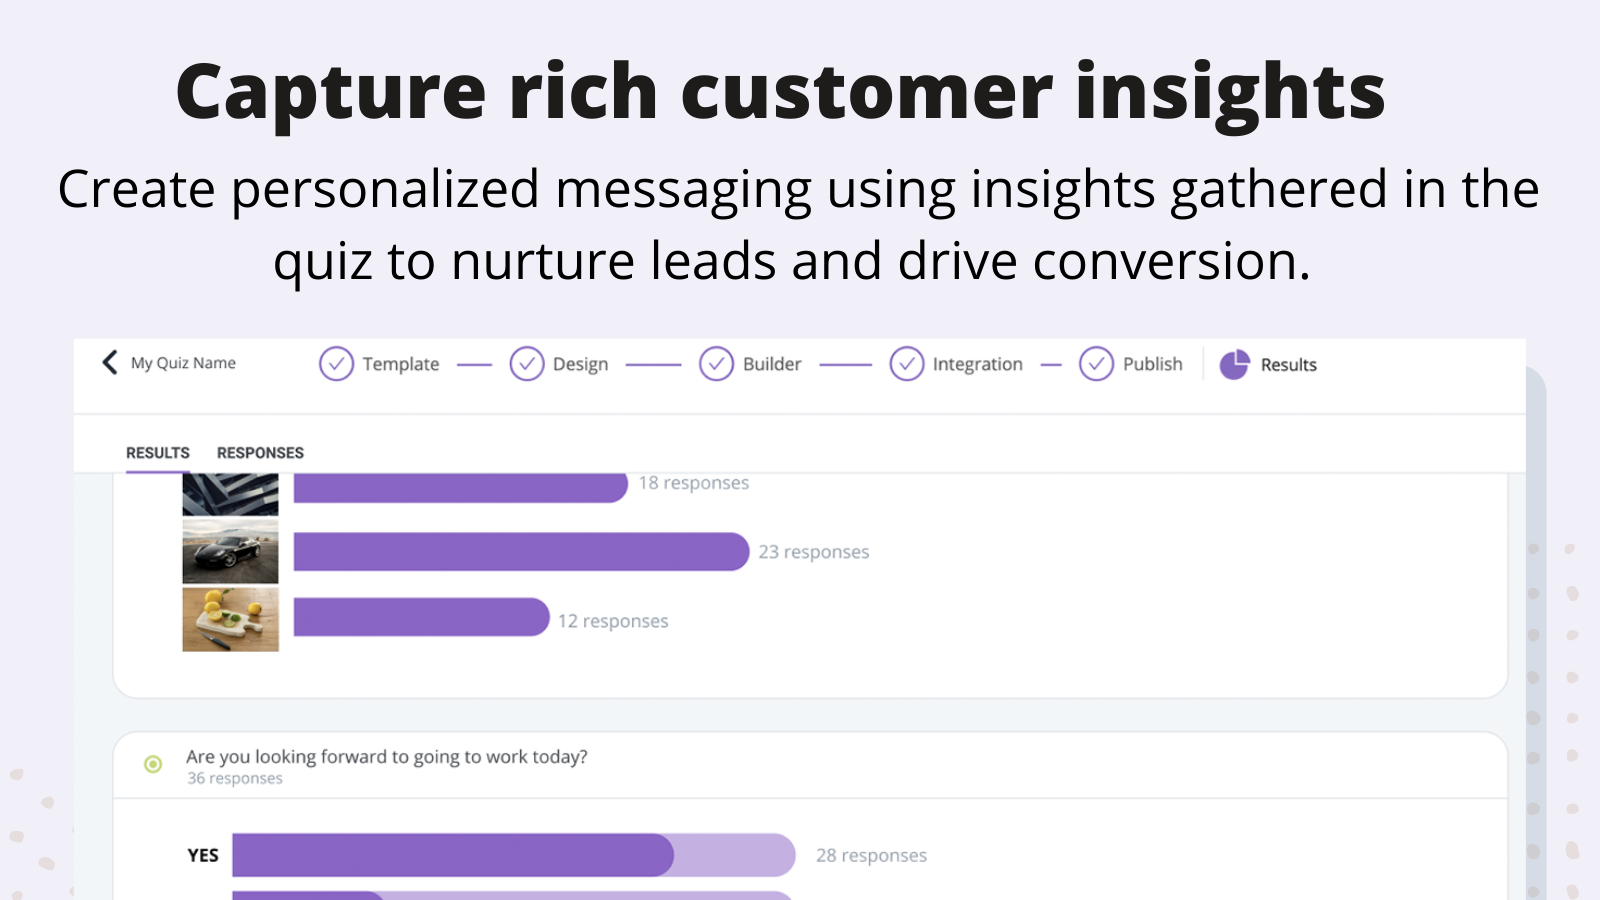 Capture Rich Customer Insights - create personalized messaging